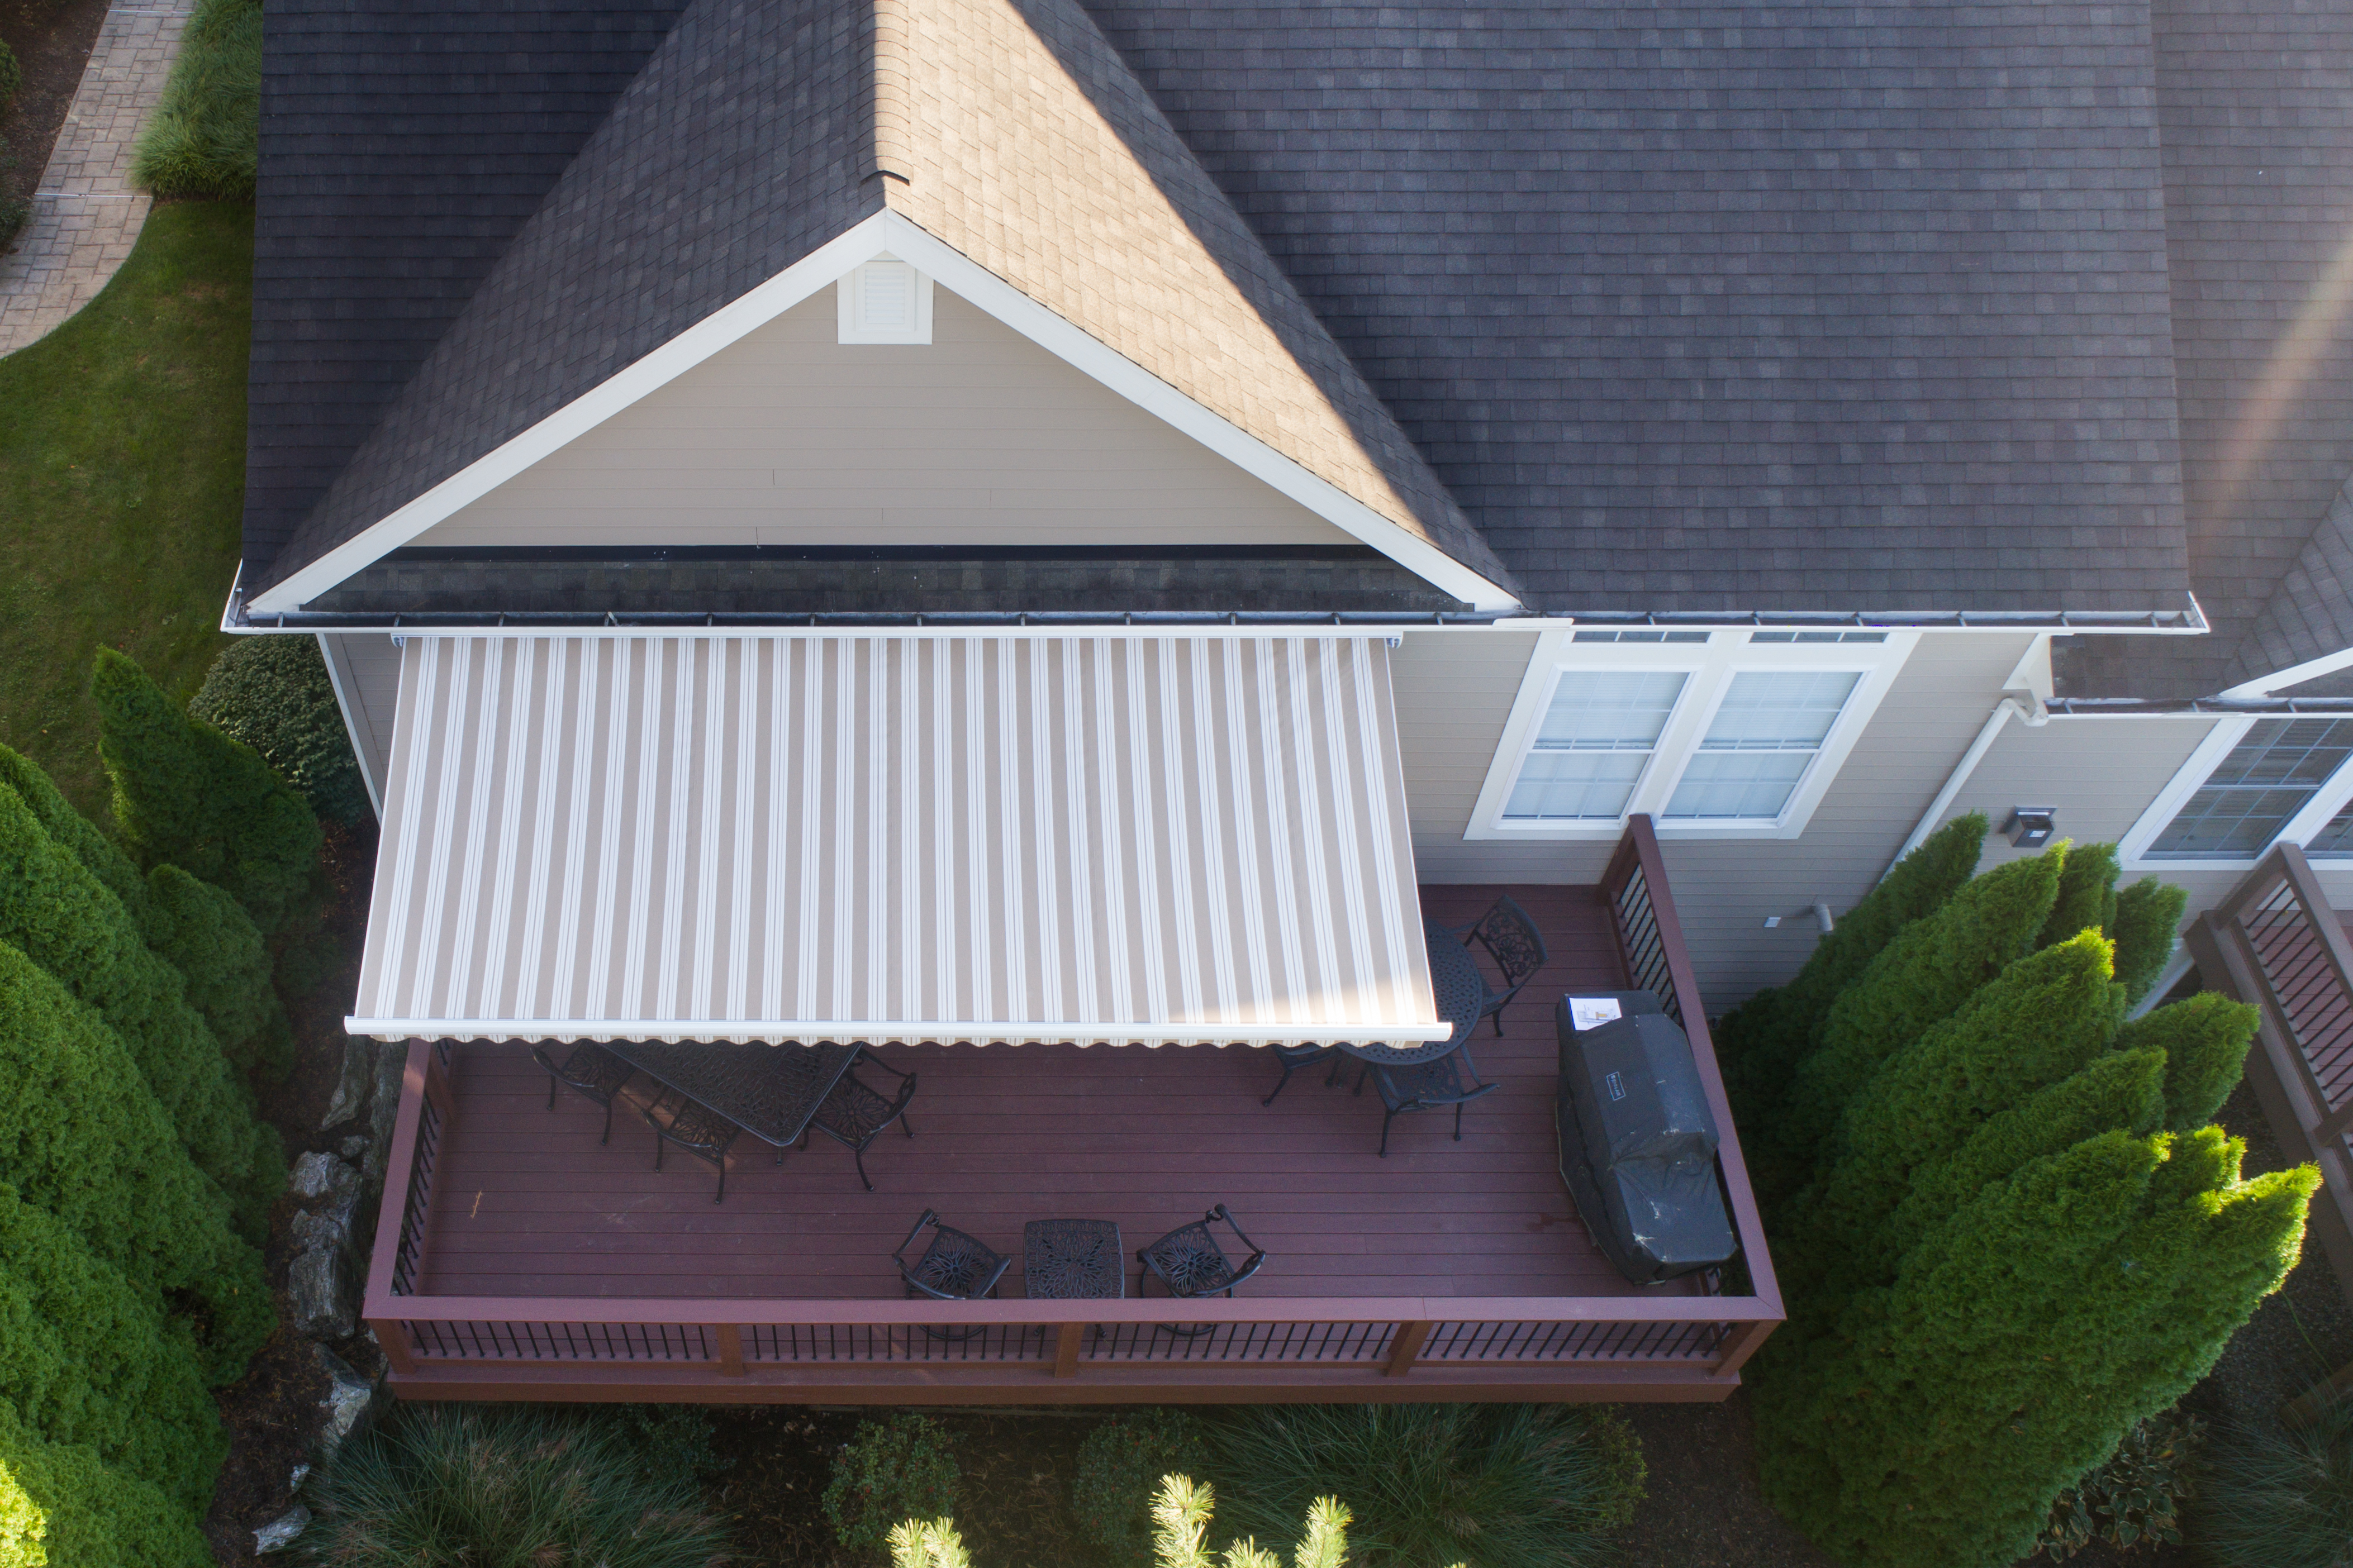 patio awning from above